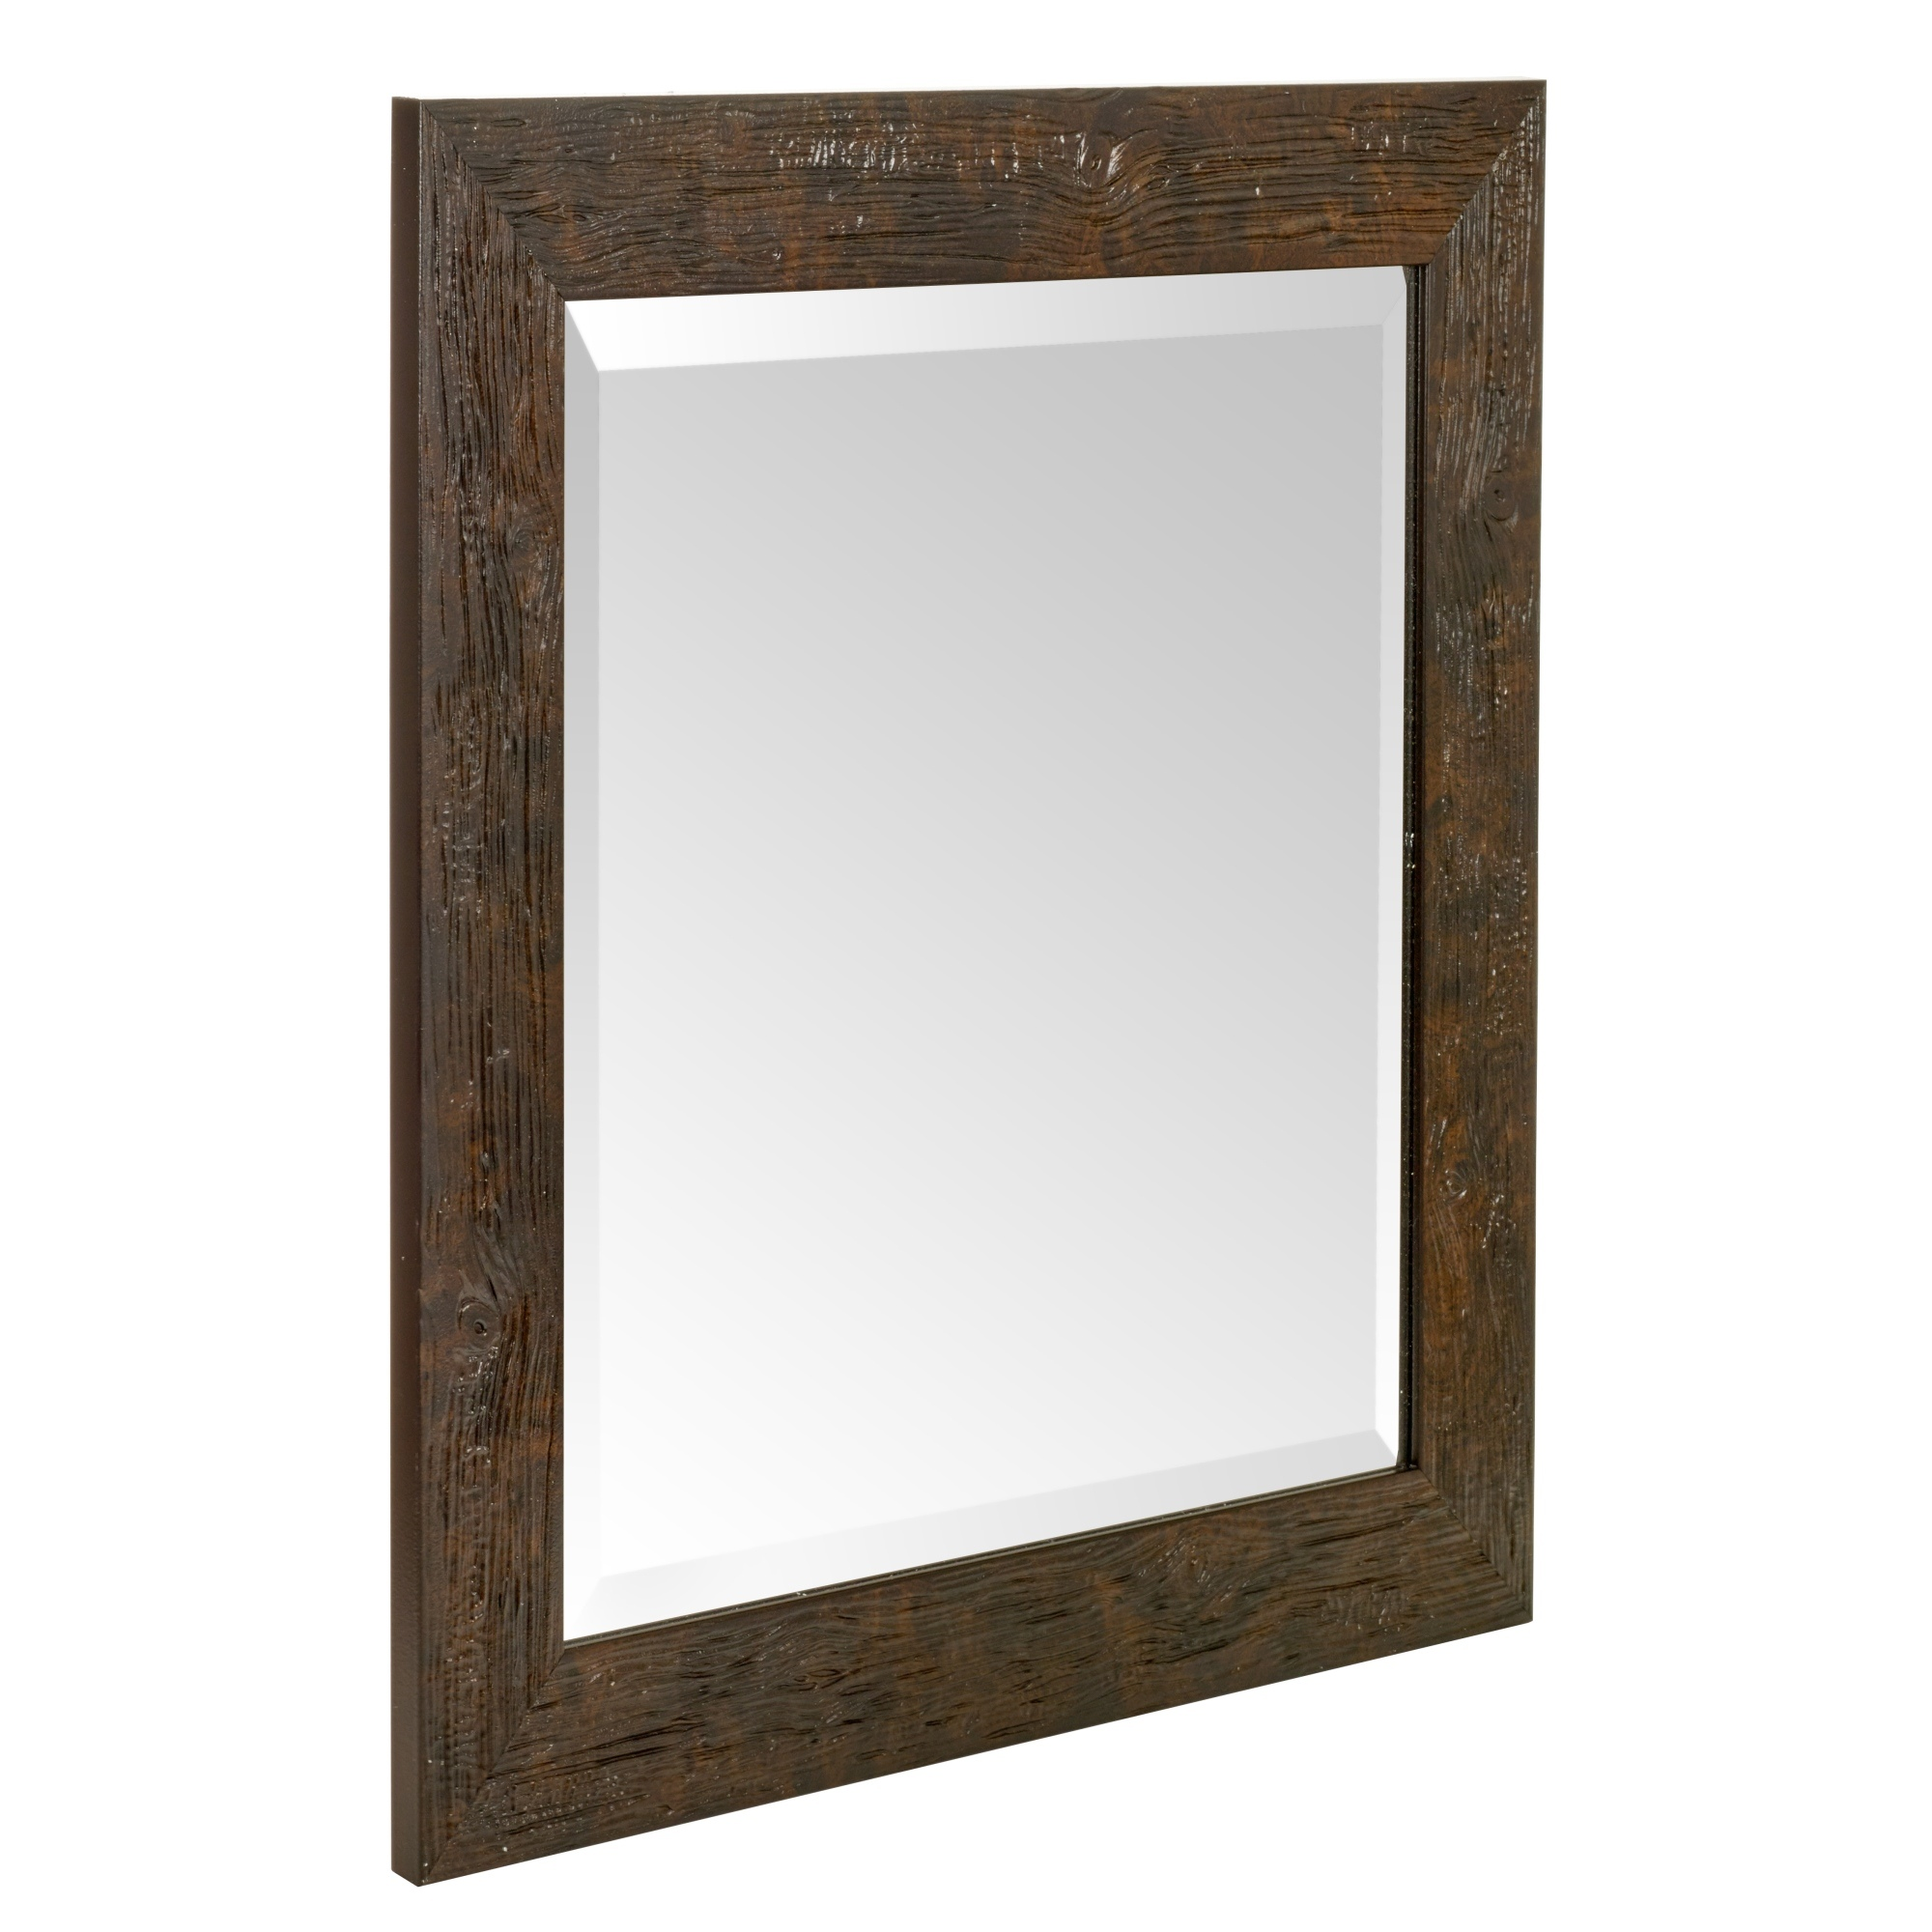 Large wall glass square mirror 50 x 50 cm mountable wood for Miroir 50x50